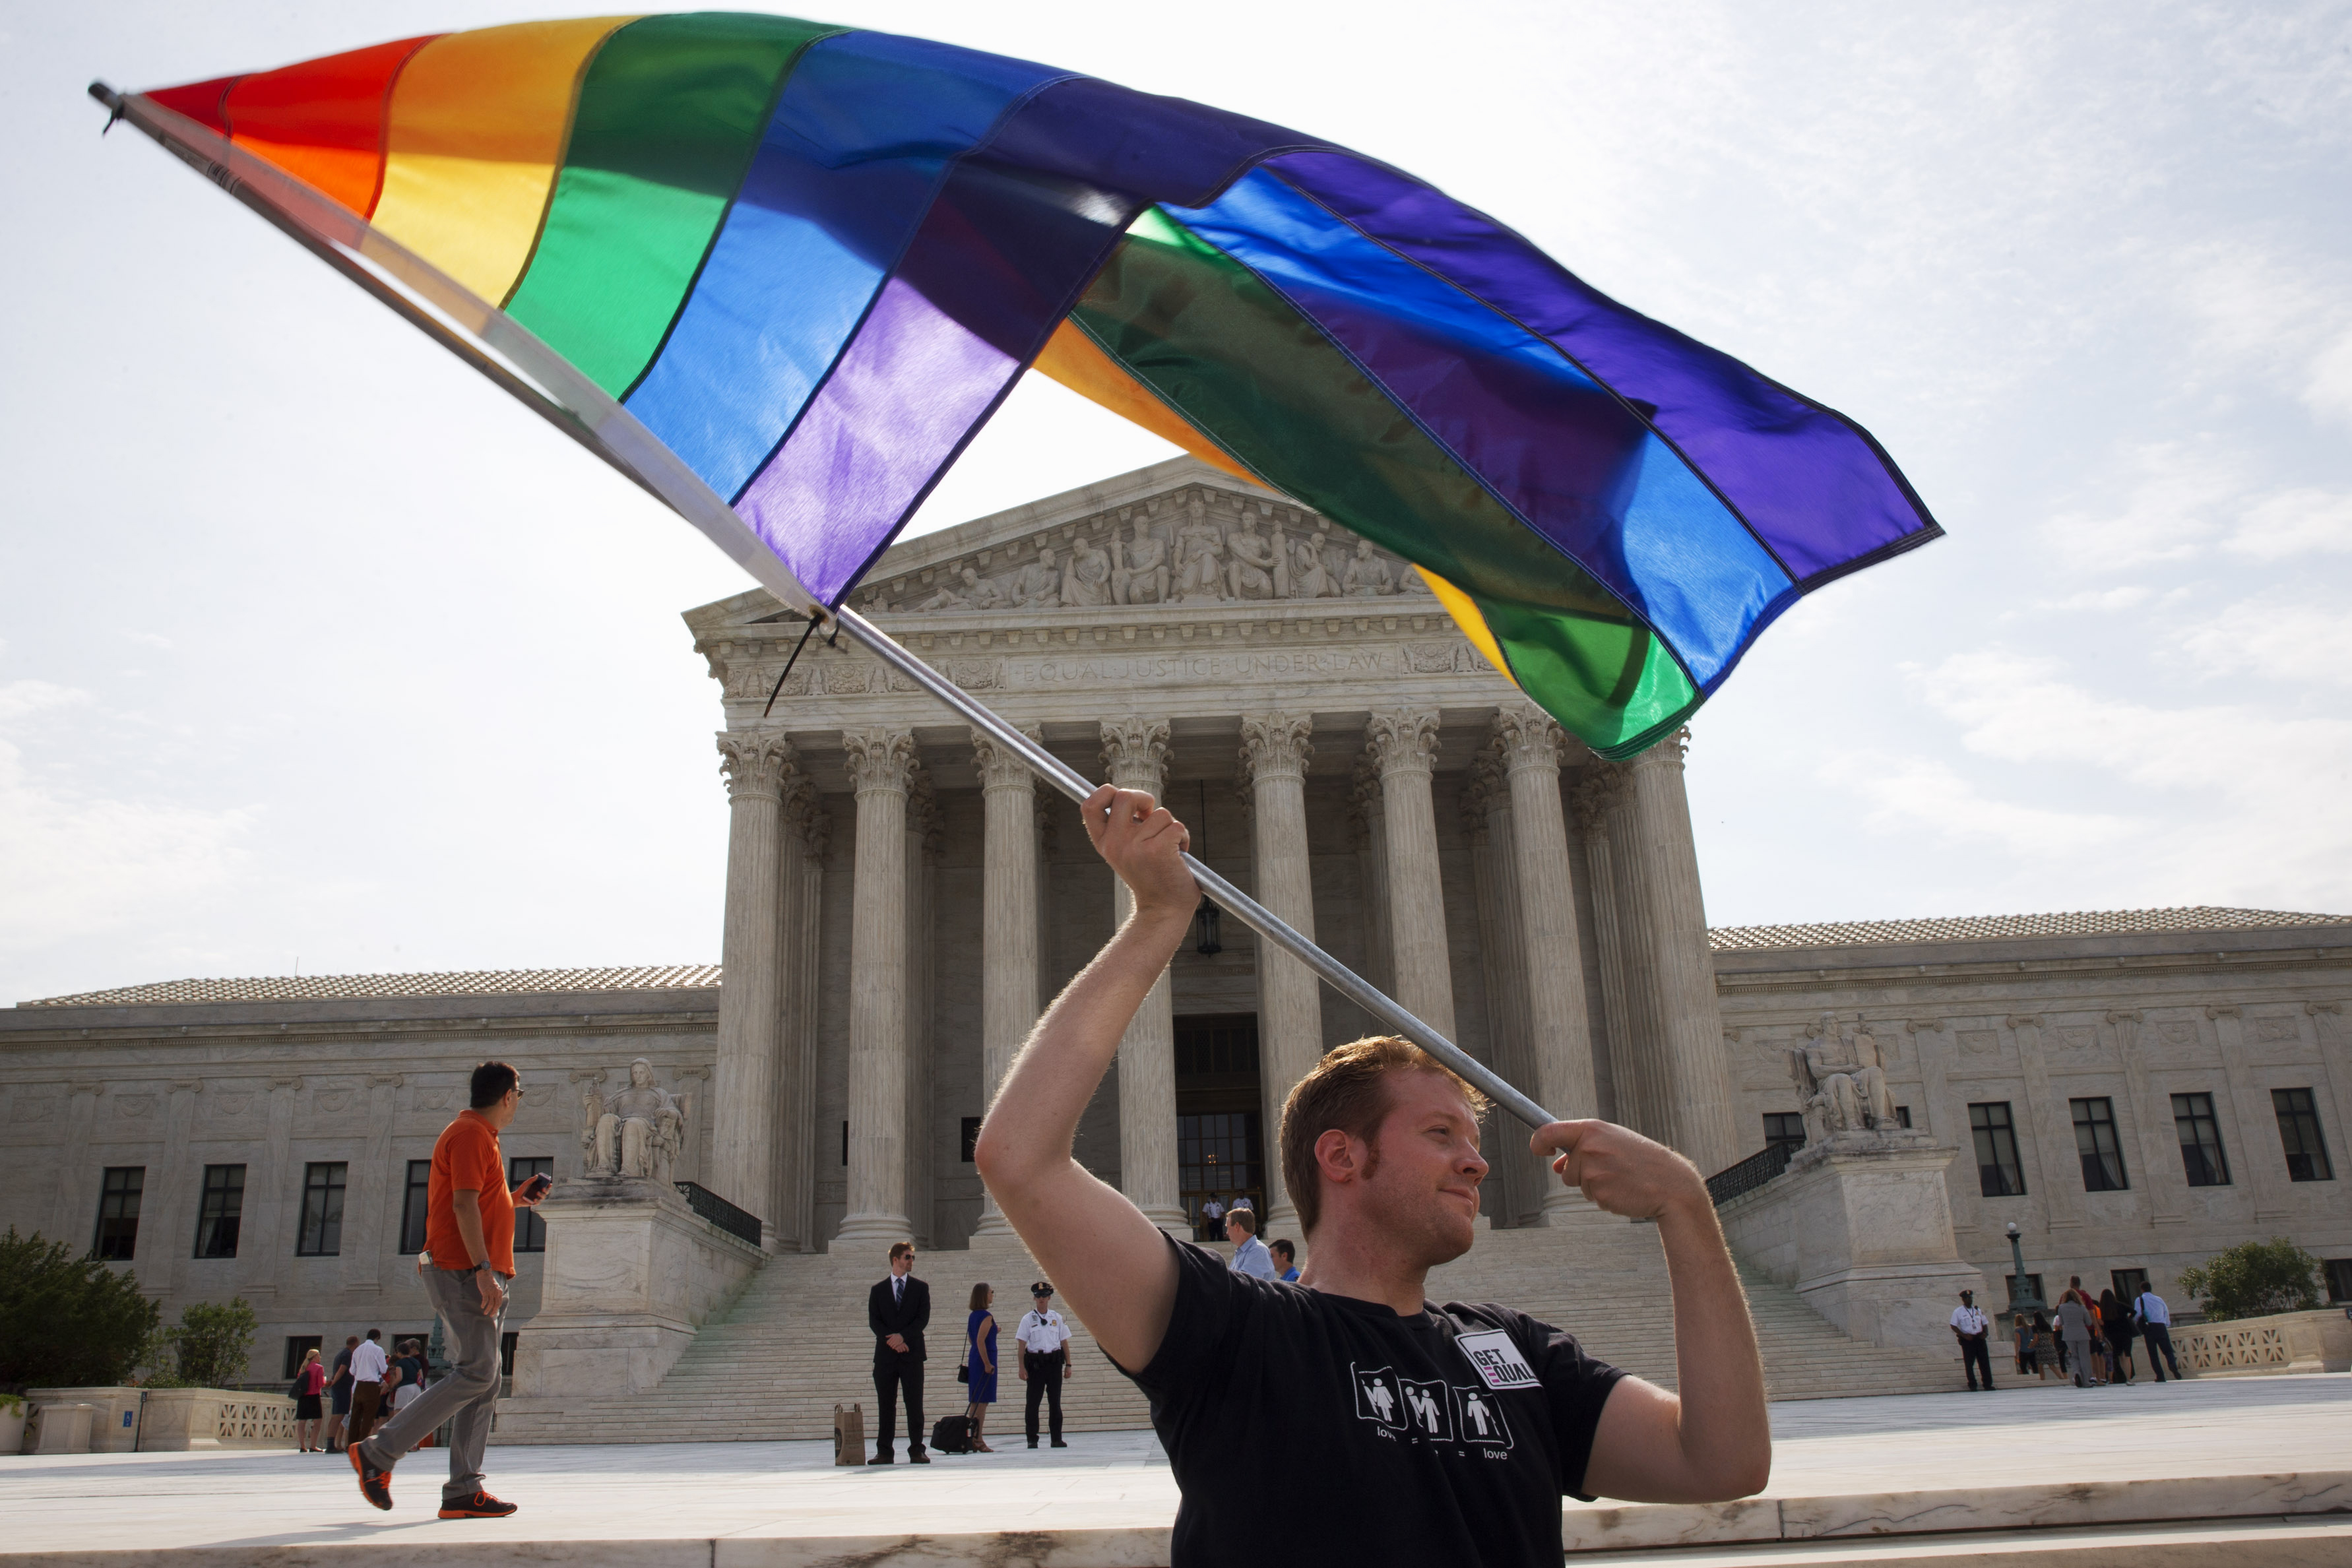 The U.S. Supreme Court legalizes same-sex marriage nationwide